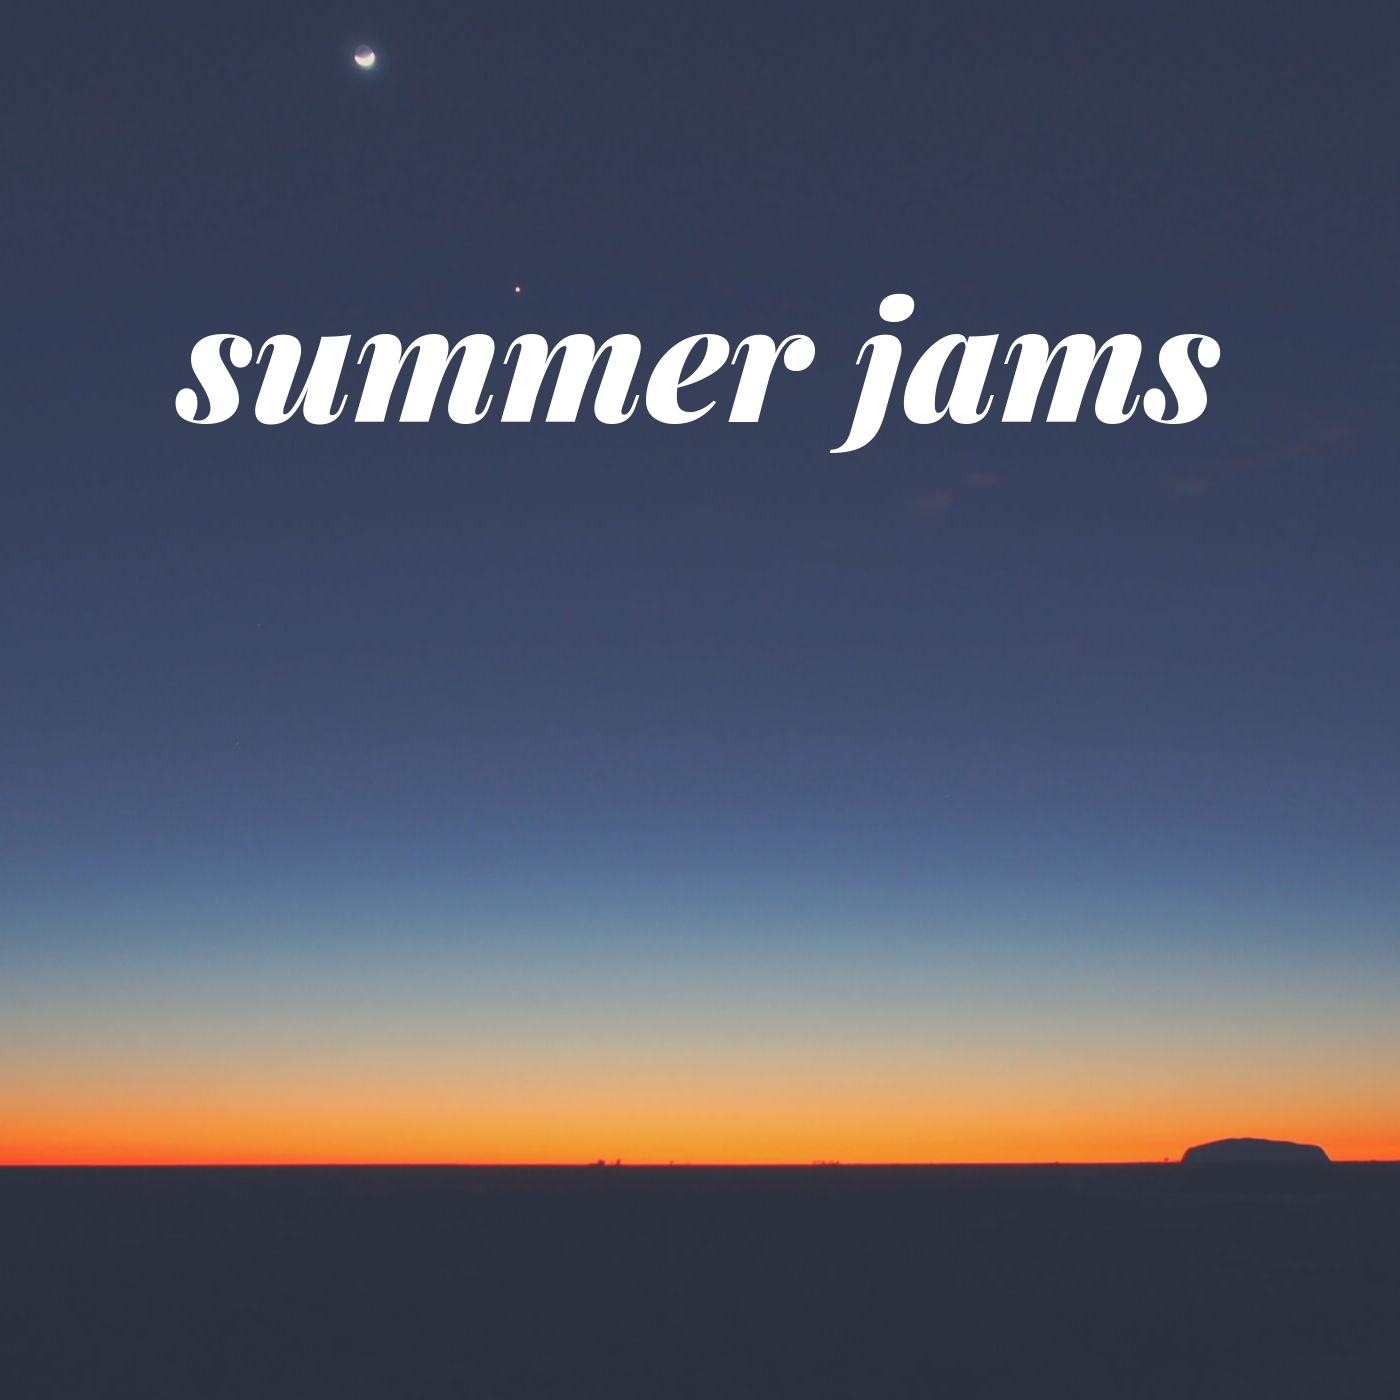 summer jams.png